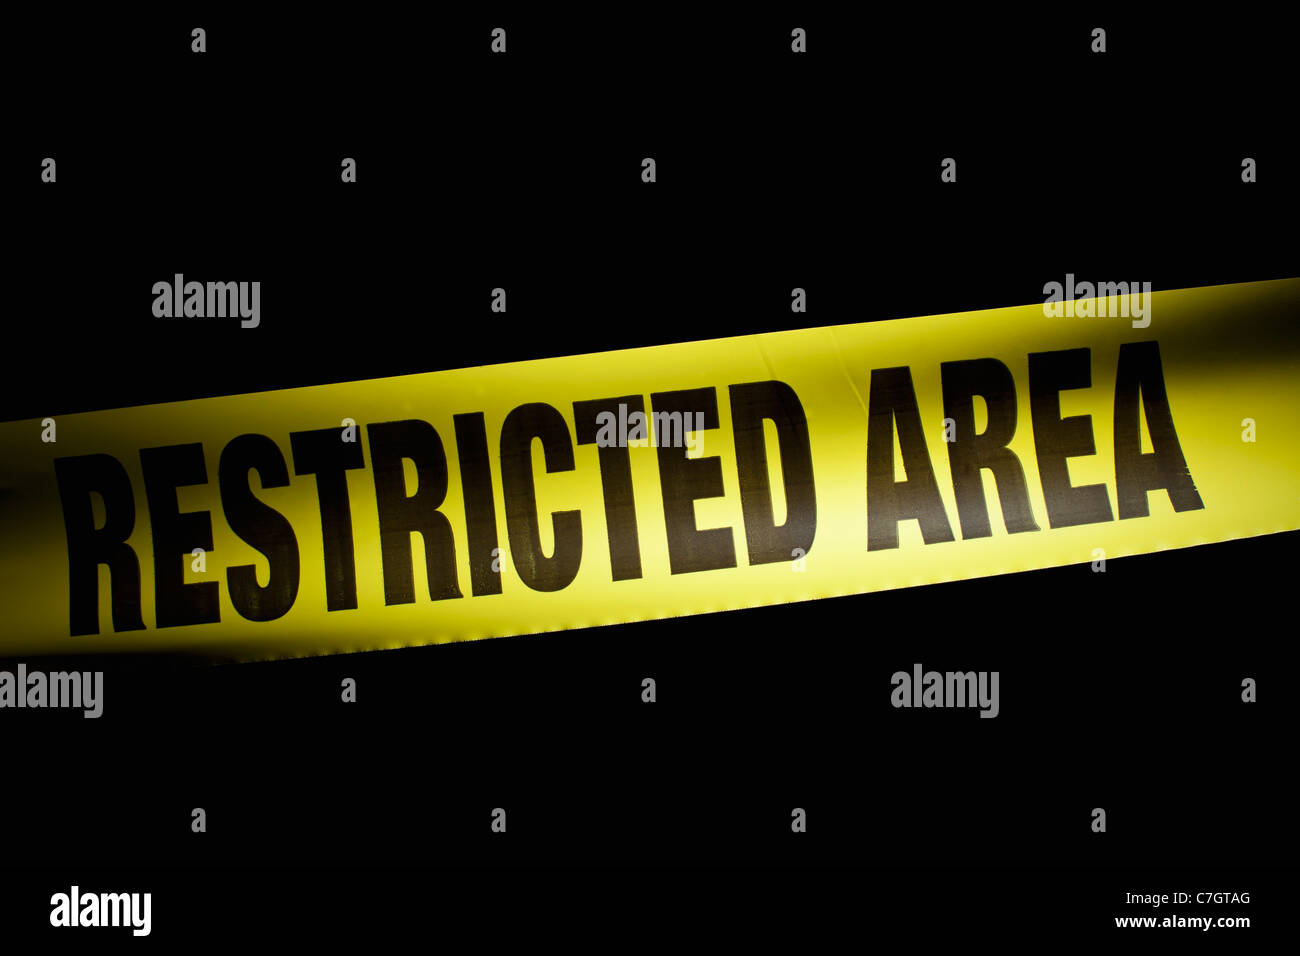 Detail of RESTRICTED AREA cordon tape - Stock Image